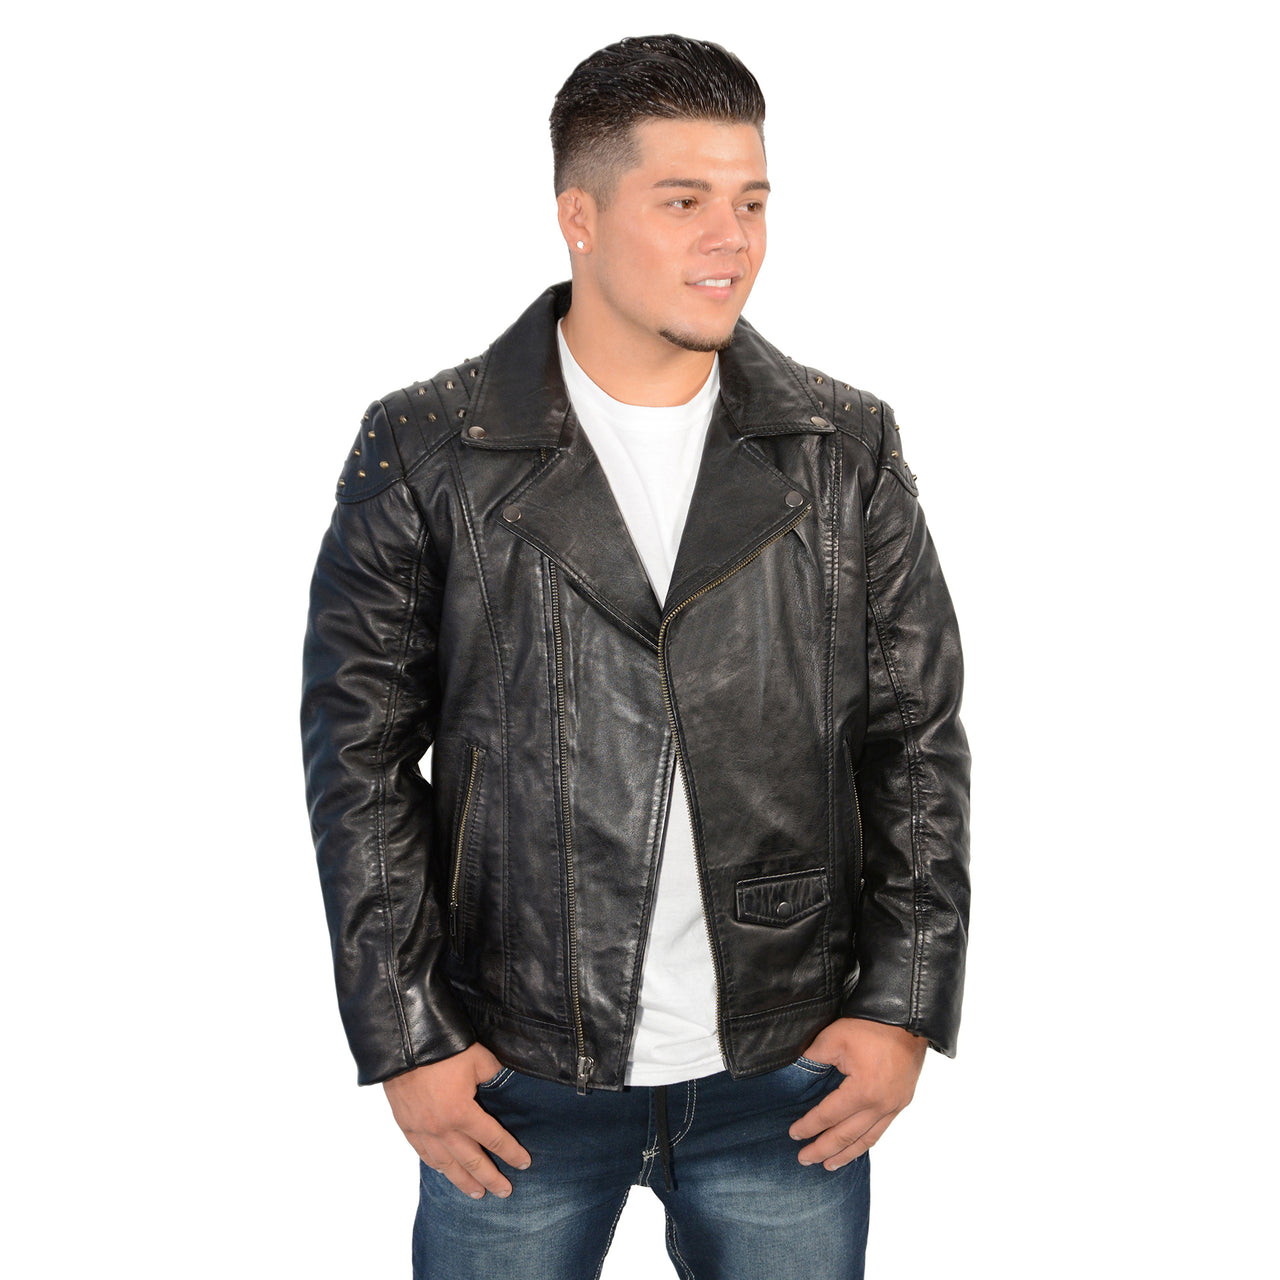 Men's m/c look jacket with shoulder studding - HighwayLeather